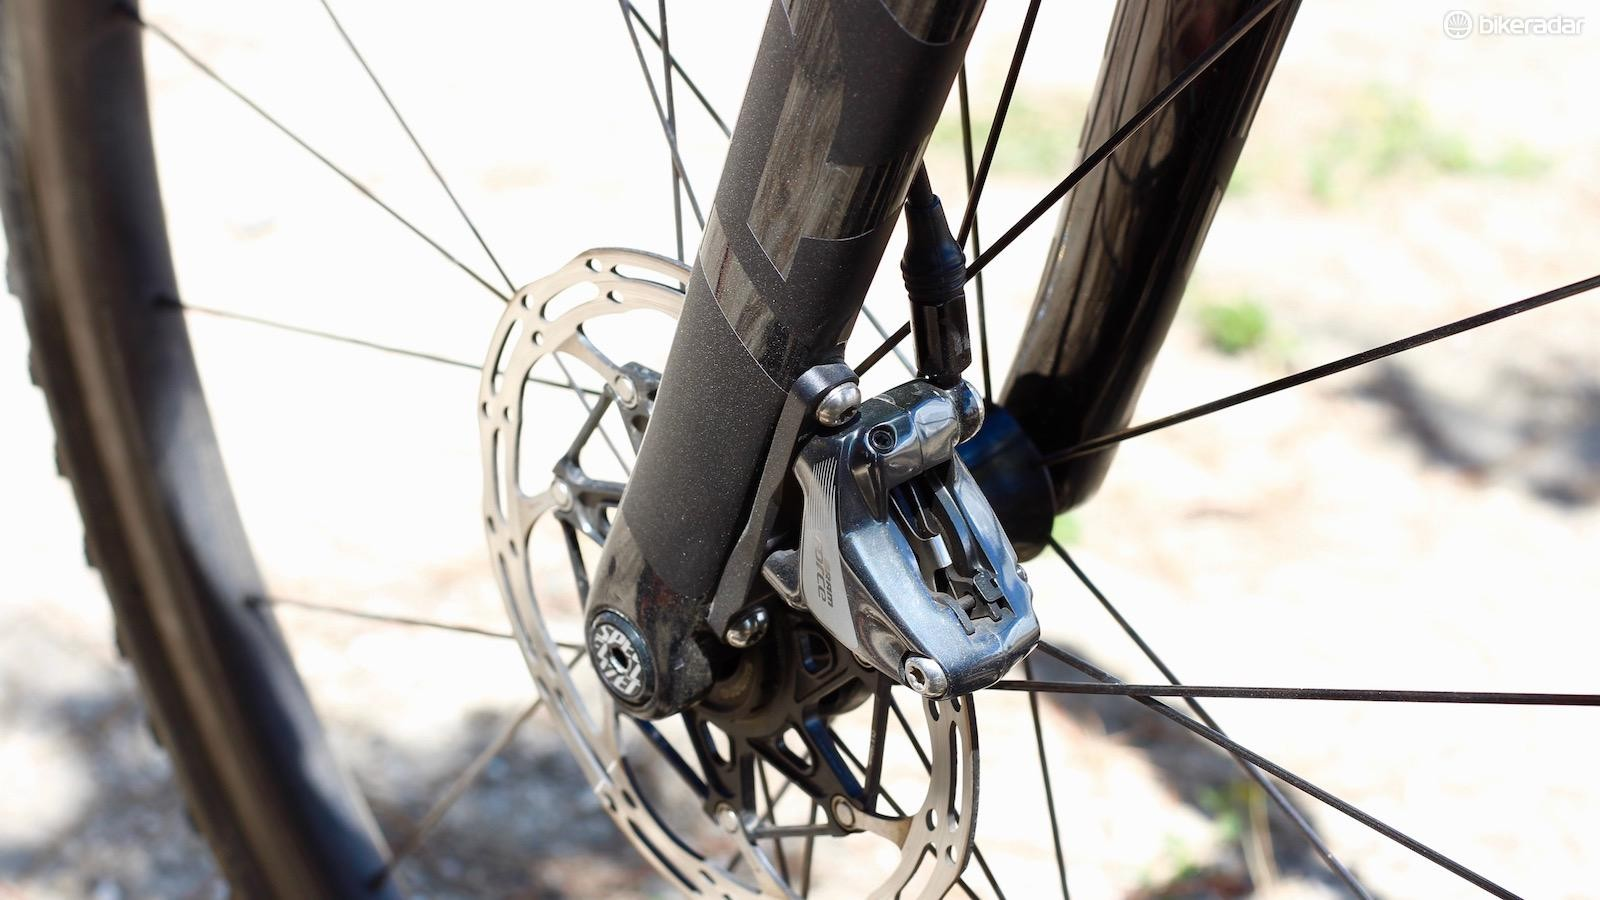 Although it's light, this thru-axle requires a tool, meaning this may not be a working-man's race bike (in fairness, this was a pro's bike). Maybe by the official launch they've got something more friendly to those of us that have spare wheels, not spare bikes